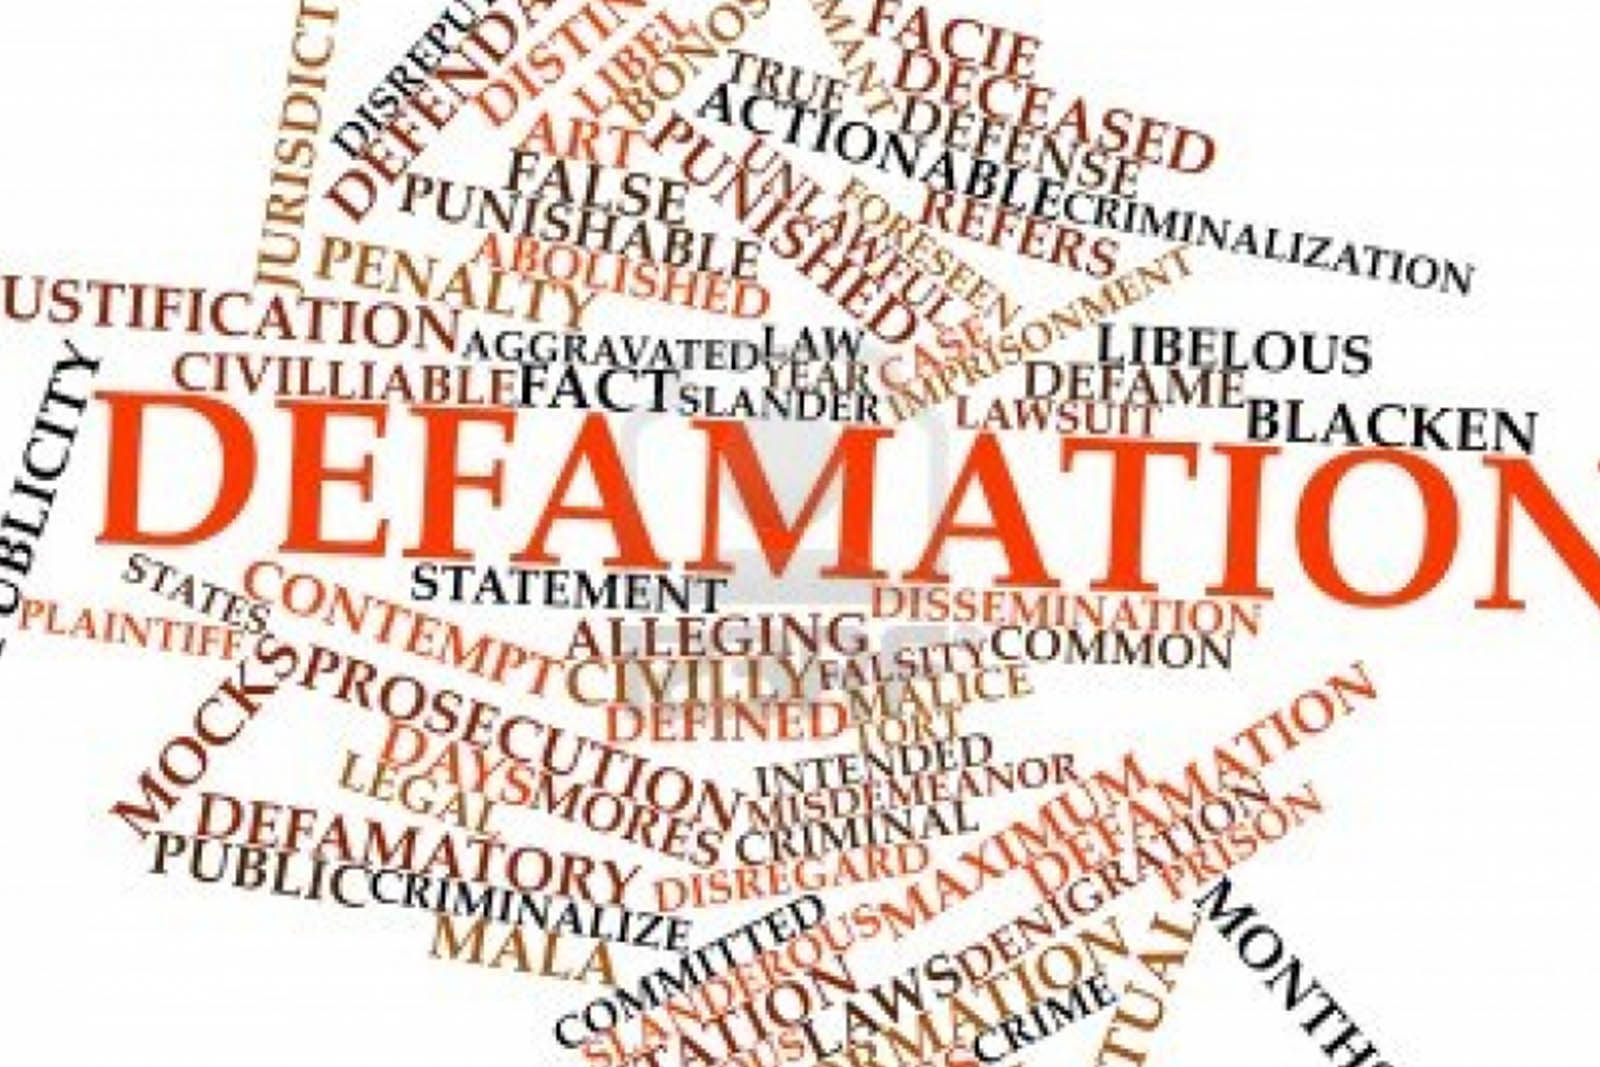 DEFAMATION AND THE CRIMINAL LAW